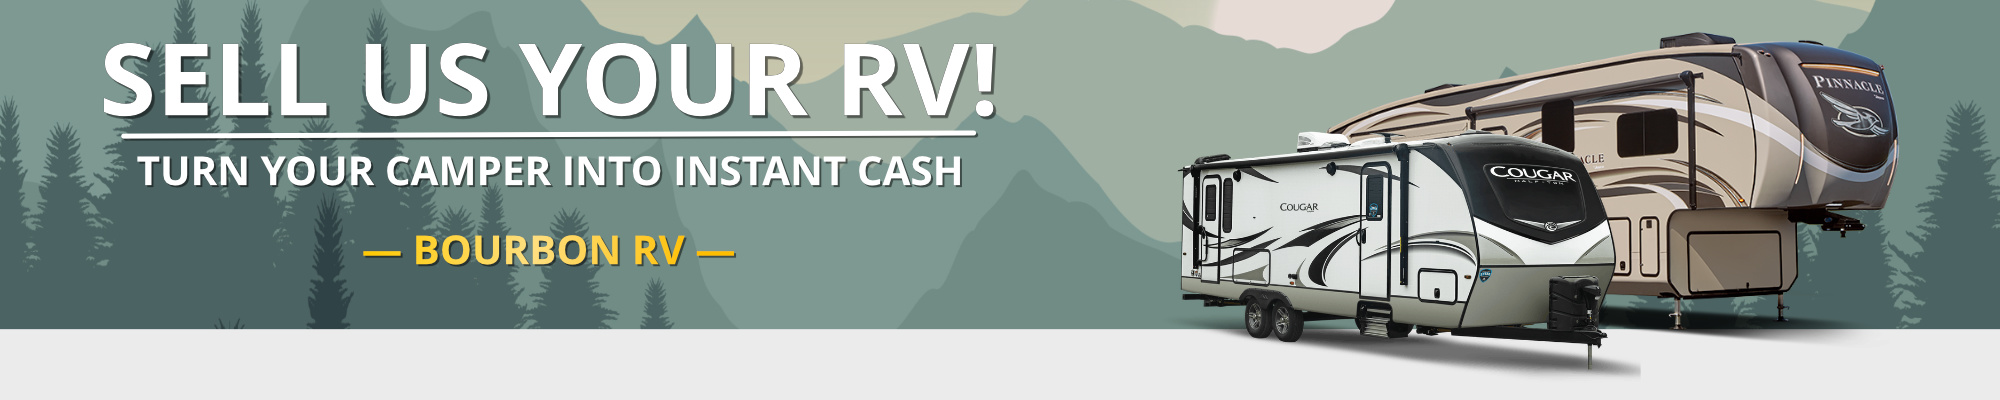 Sell Us Your RV